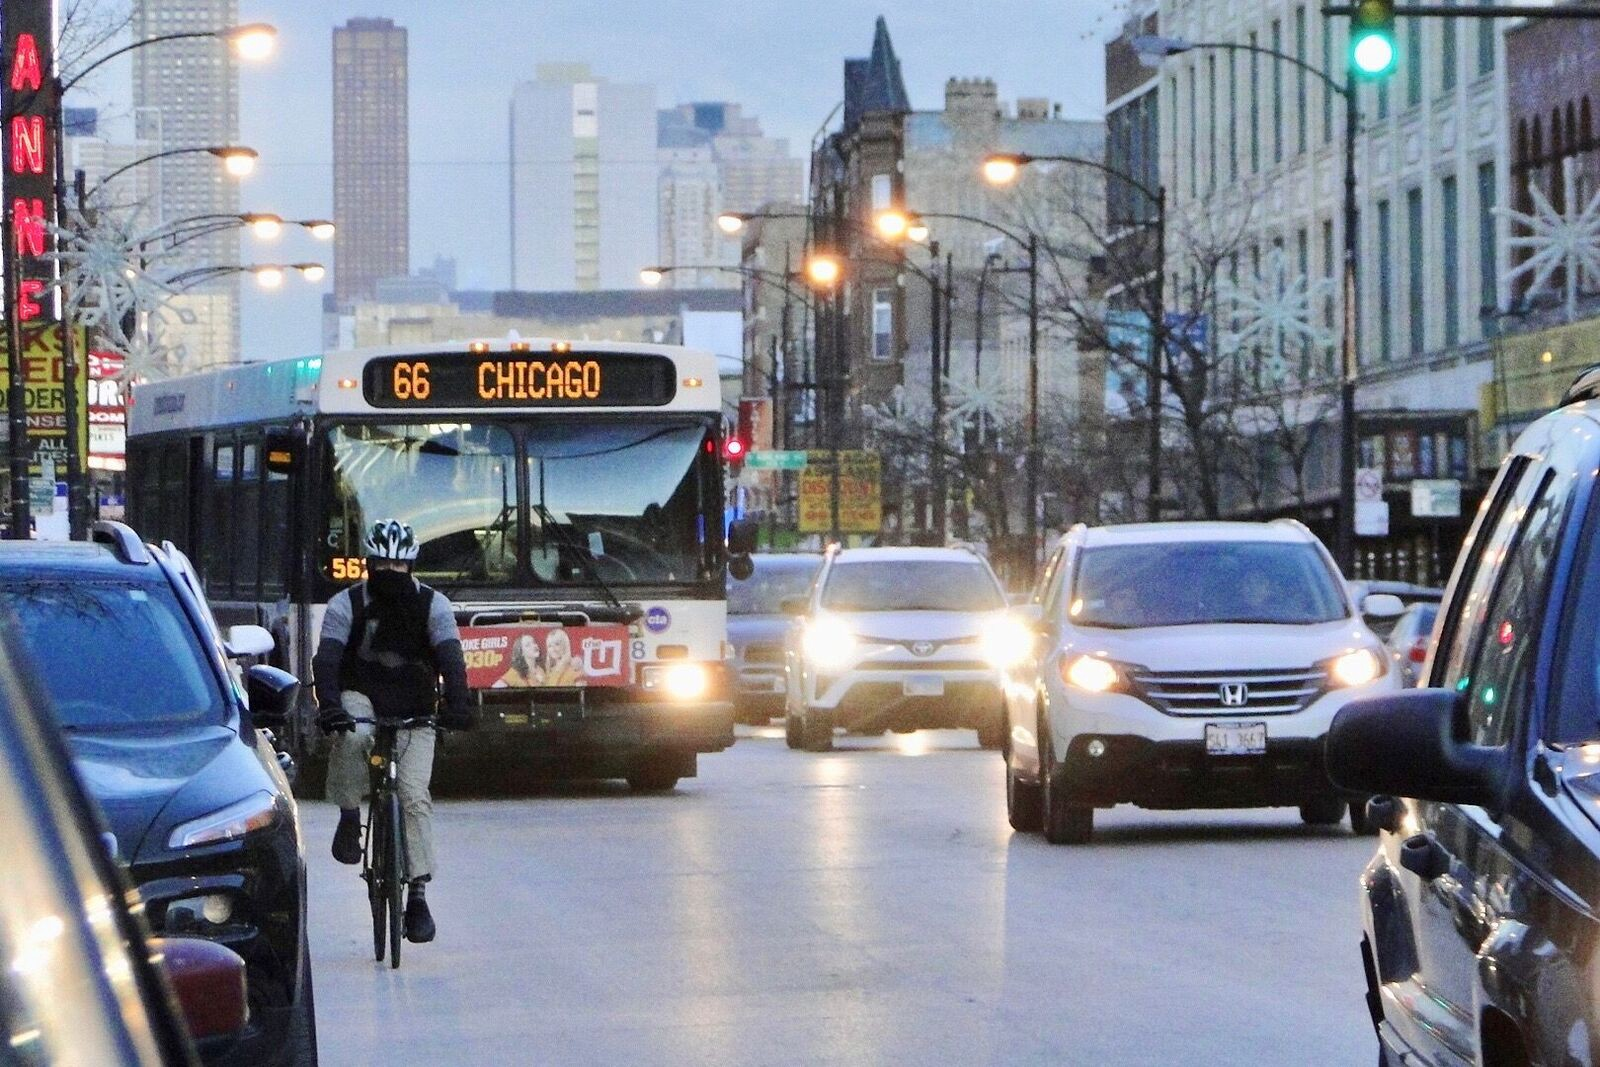 Swap Car Lanes for Bike Lanes On Chicago Avenue? CDOT is Thinking